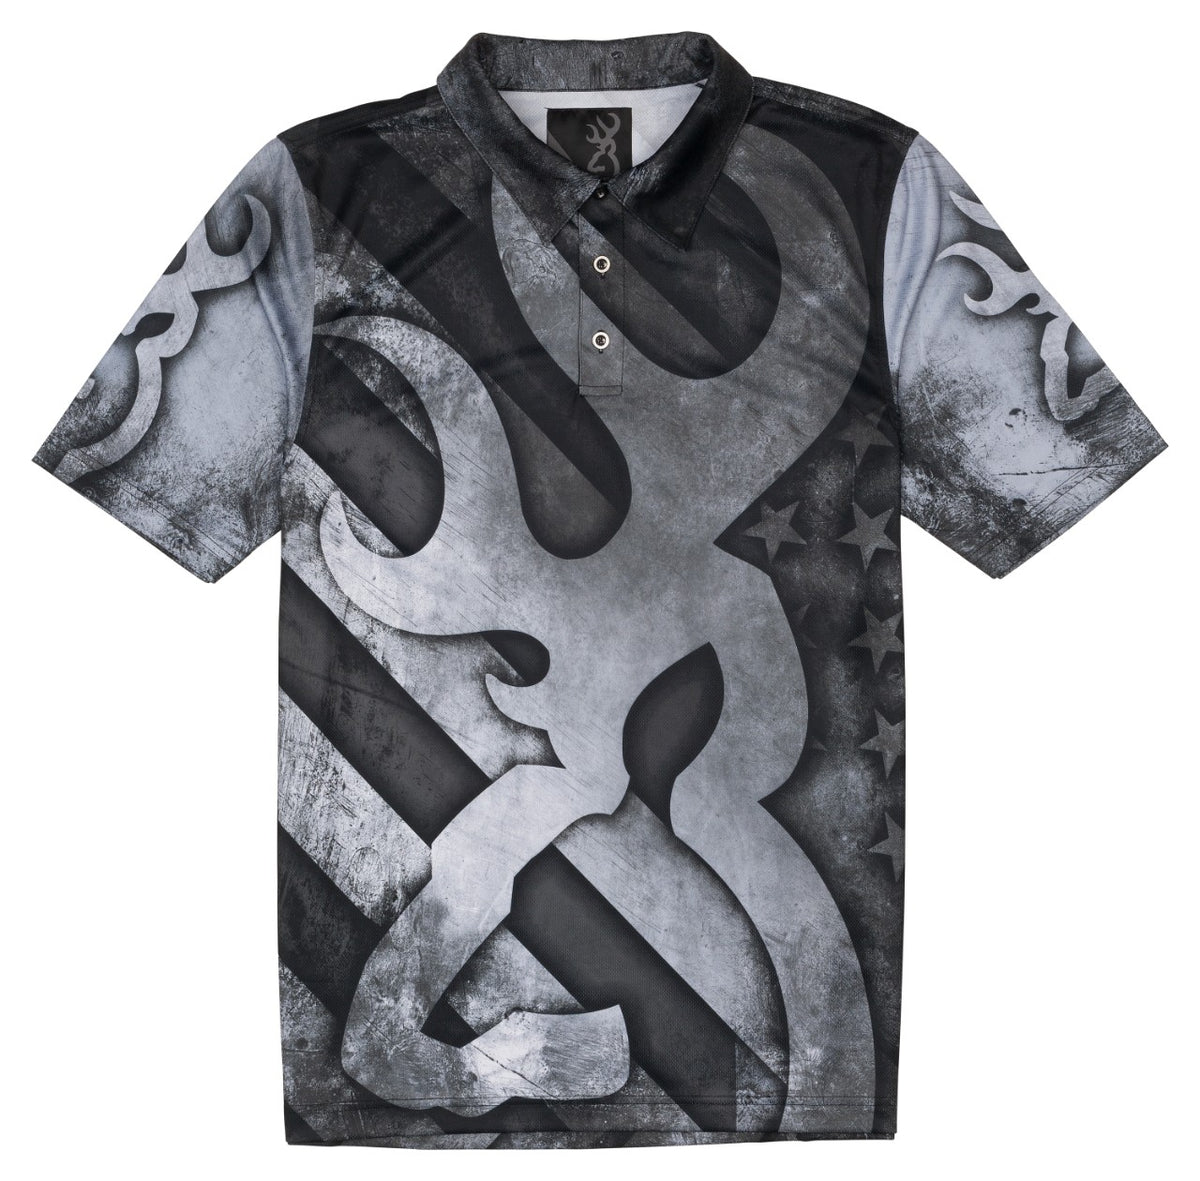 SHT,BROWNING TEAM,BLACK/WHITE,S